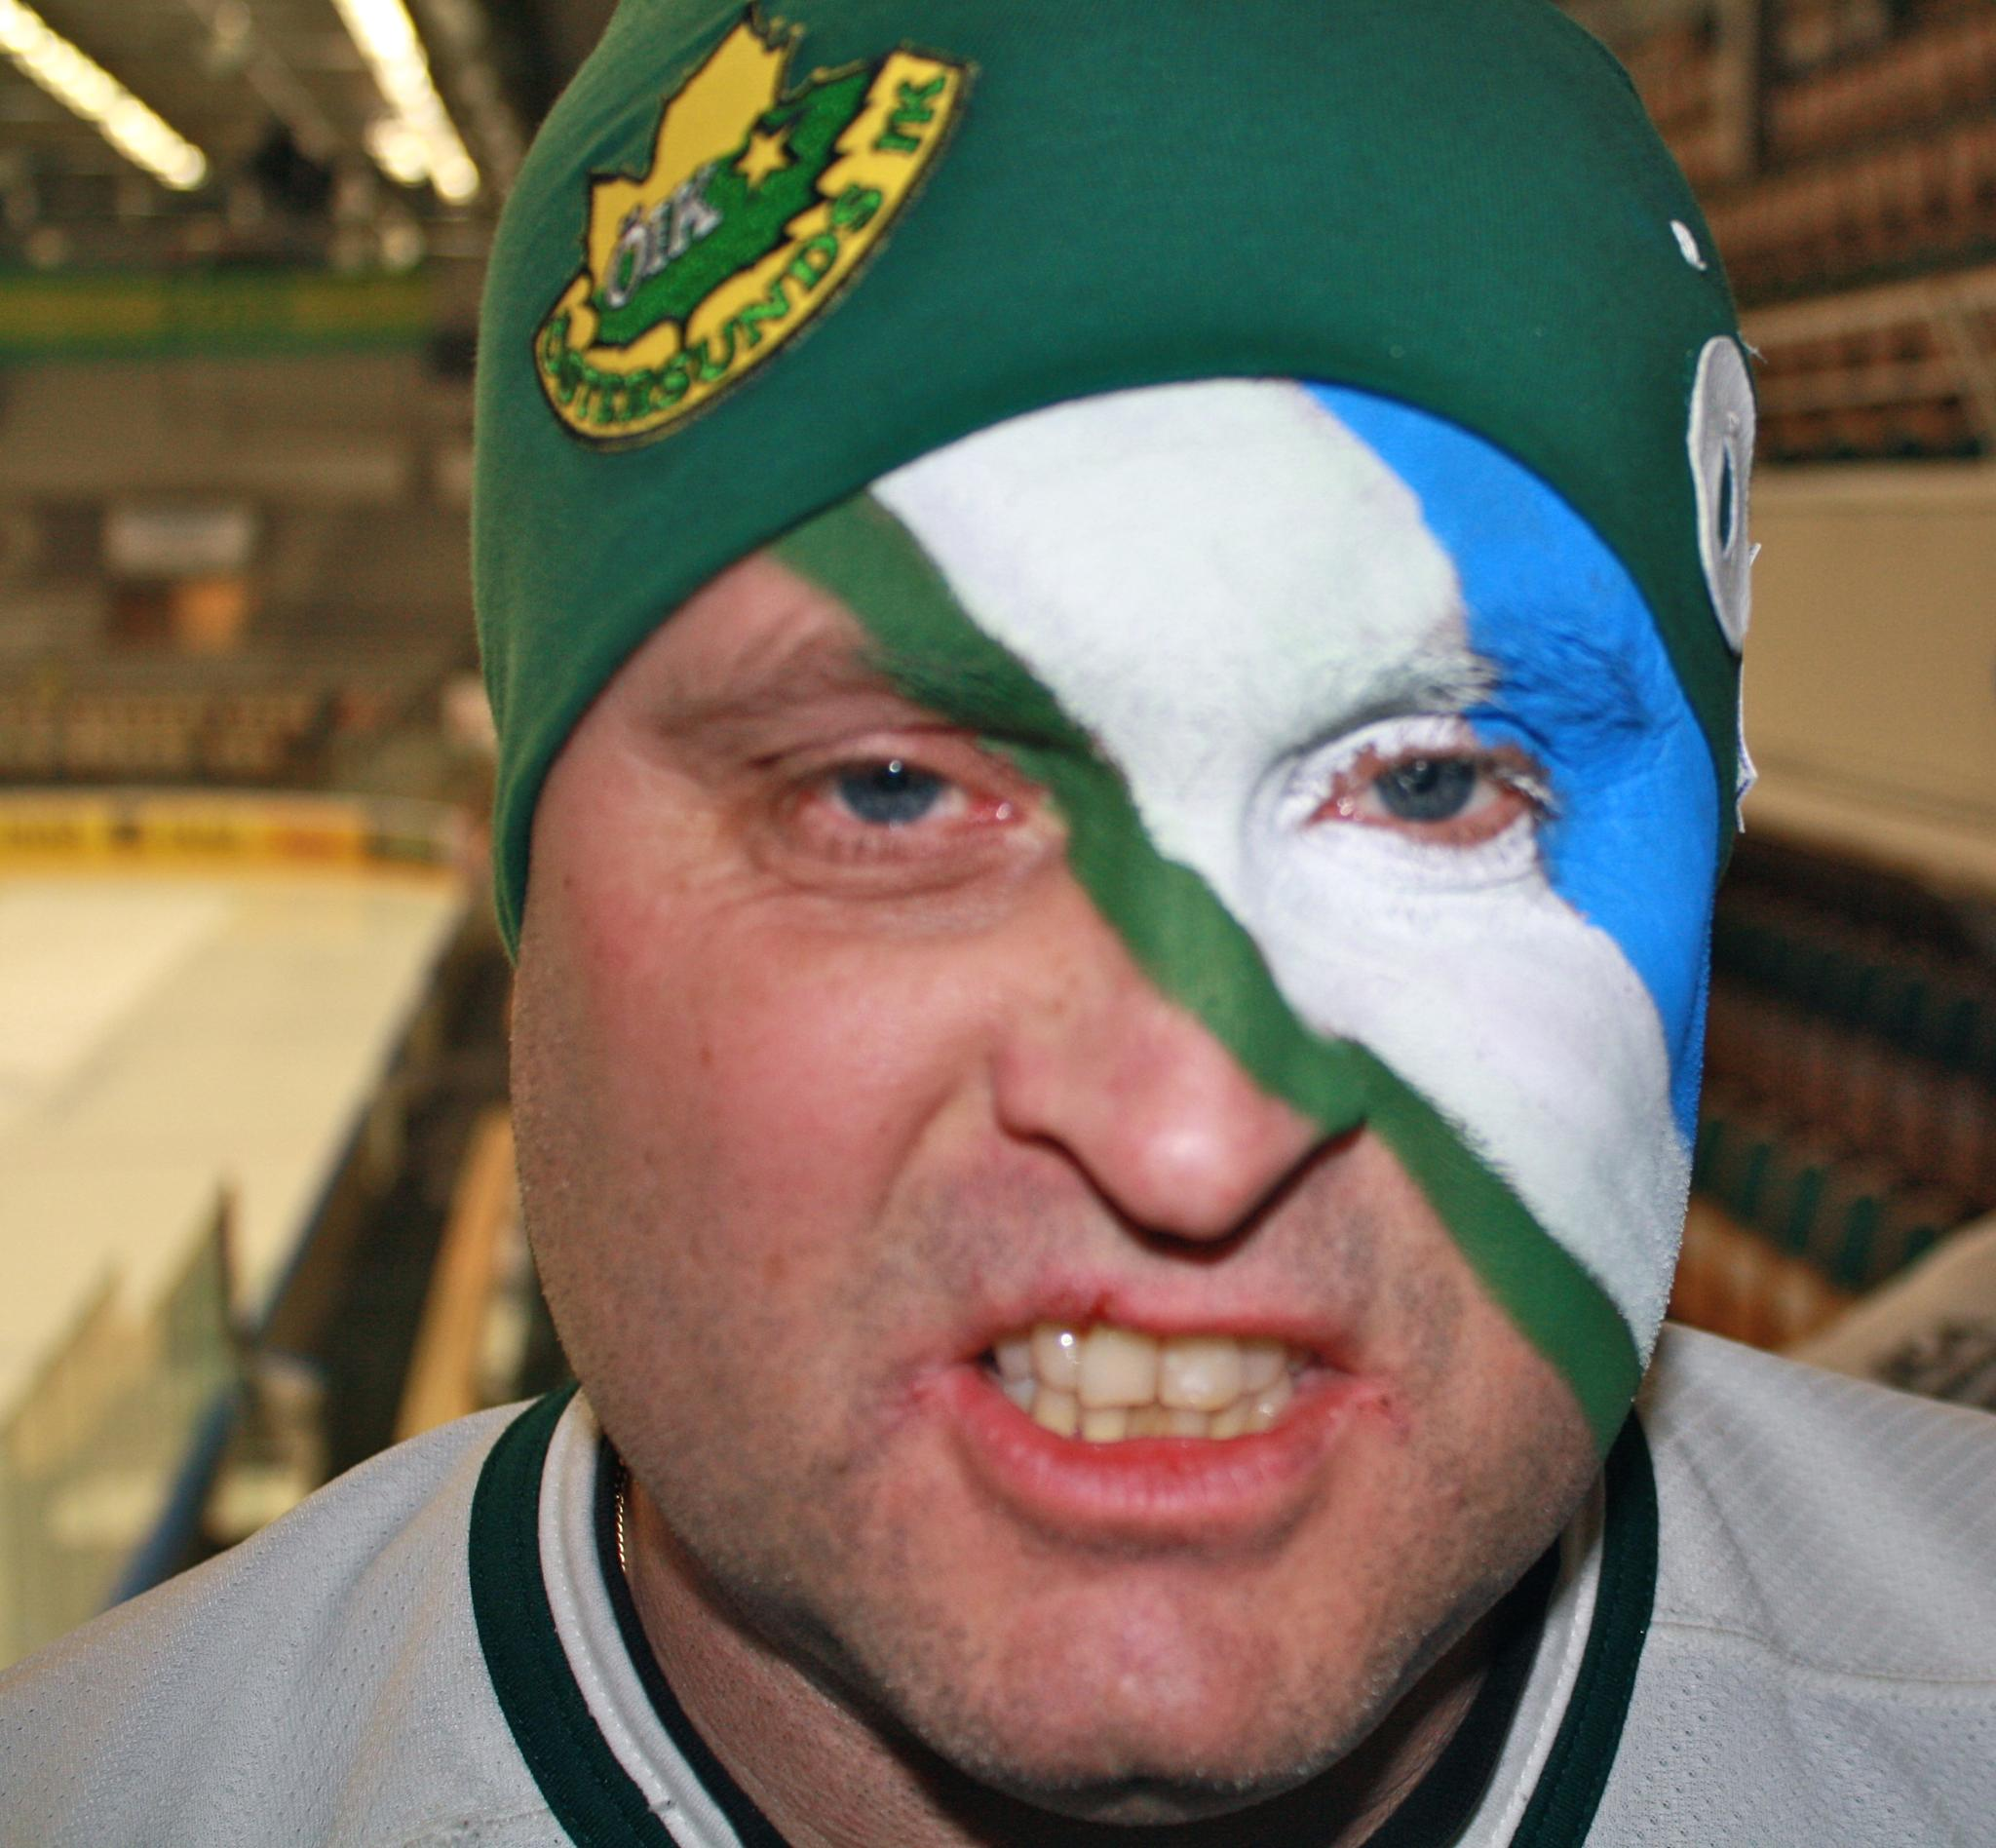 Ishockey supporter by Birgith Haraldsson